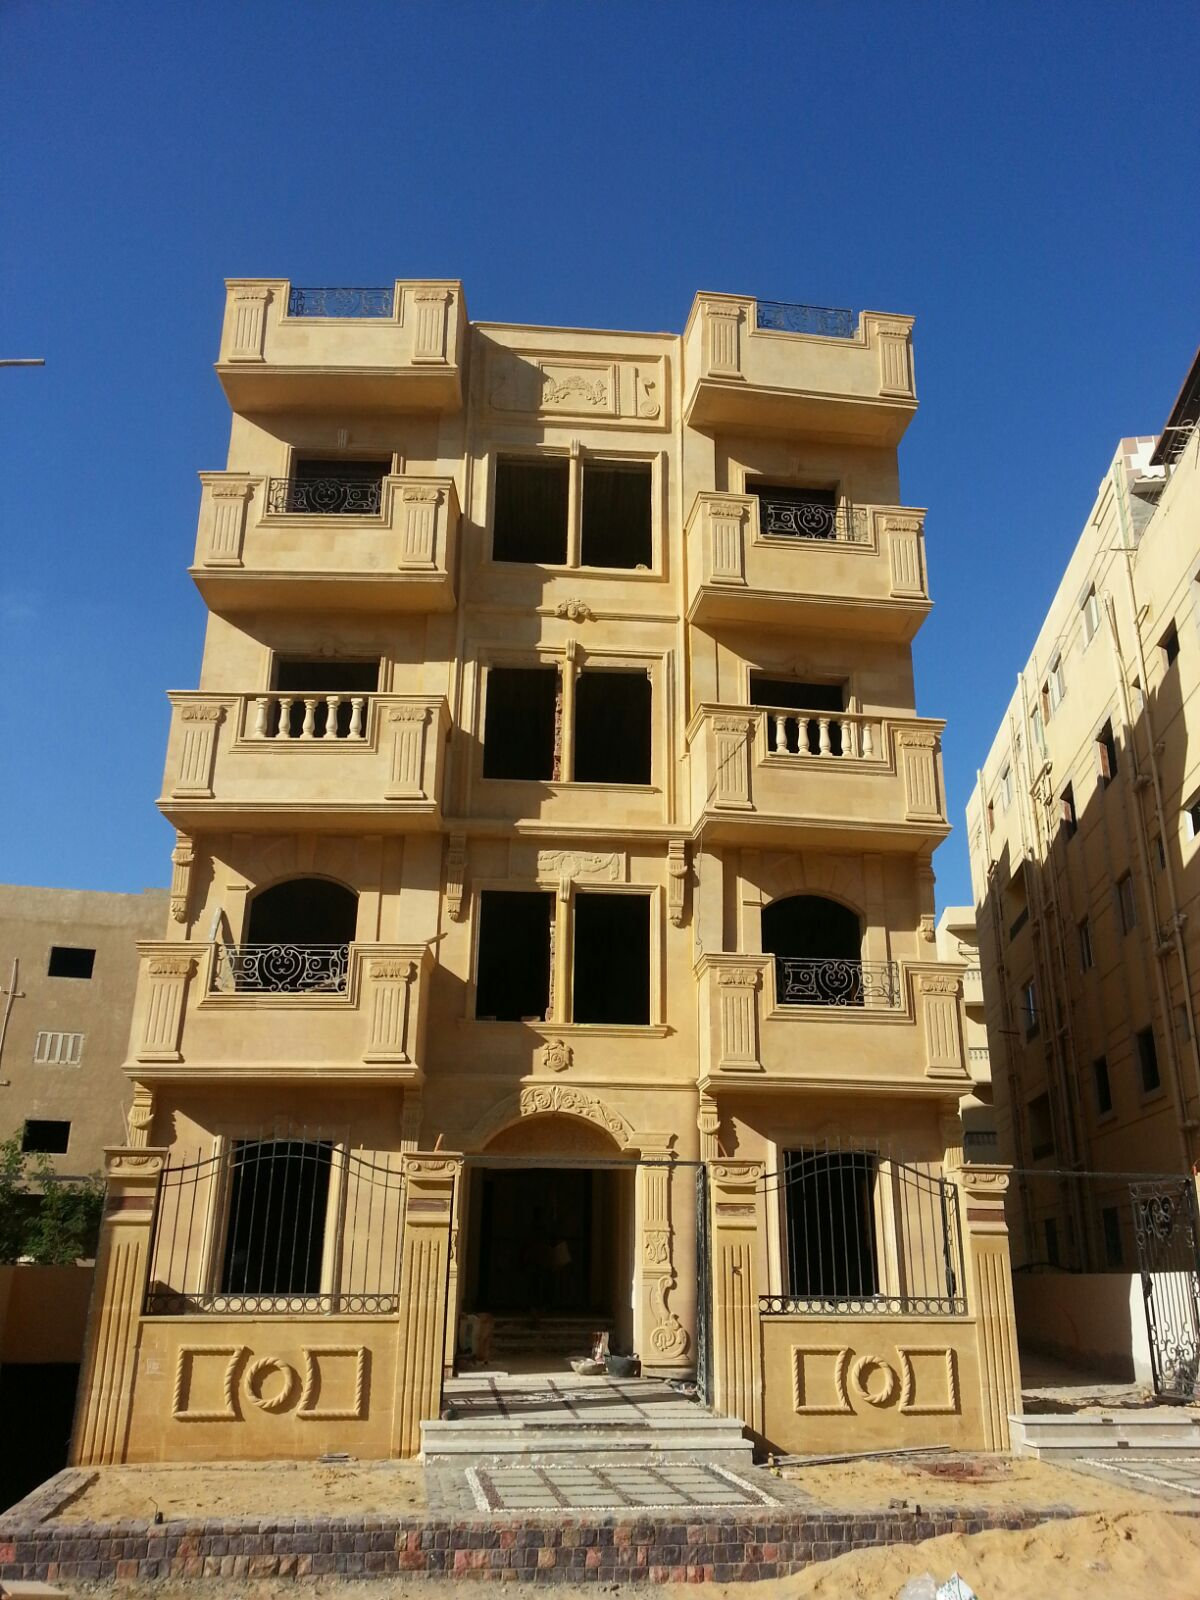 For sale Apartment  Housing USA  Fifth District  New Cairo